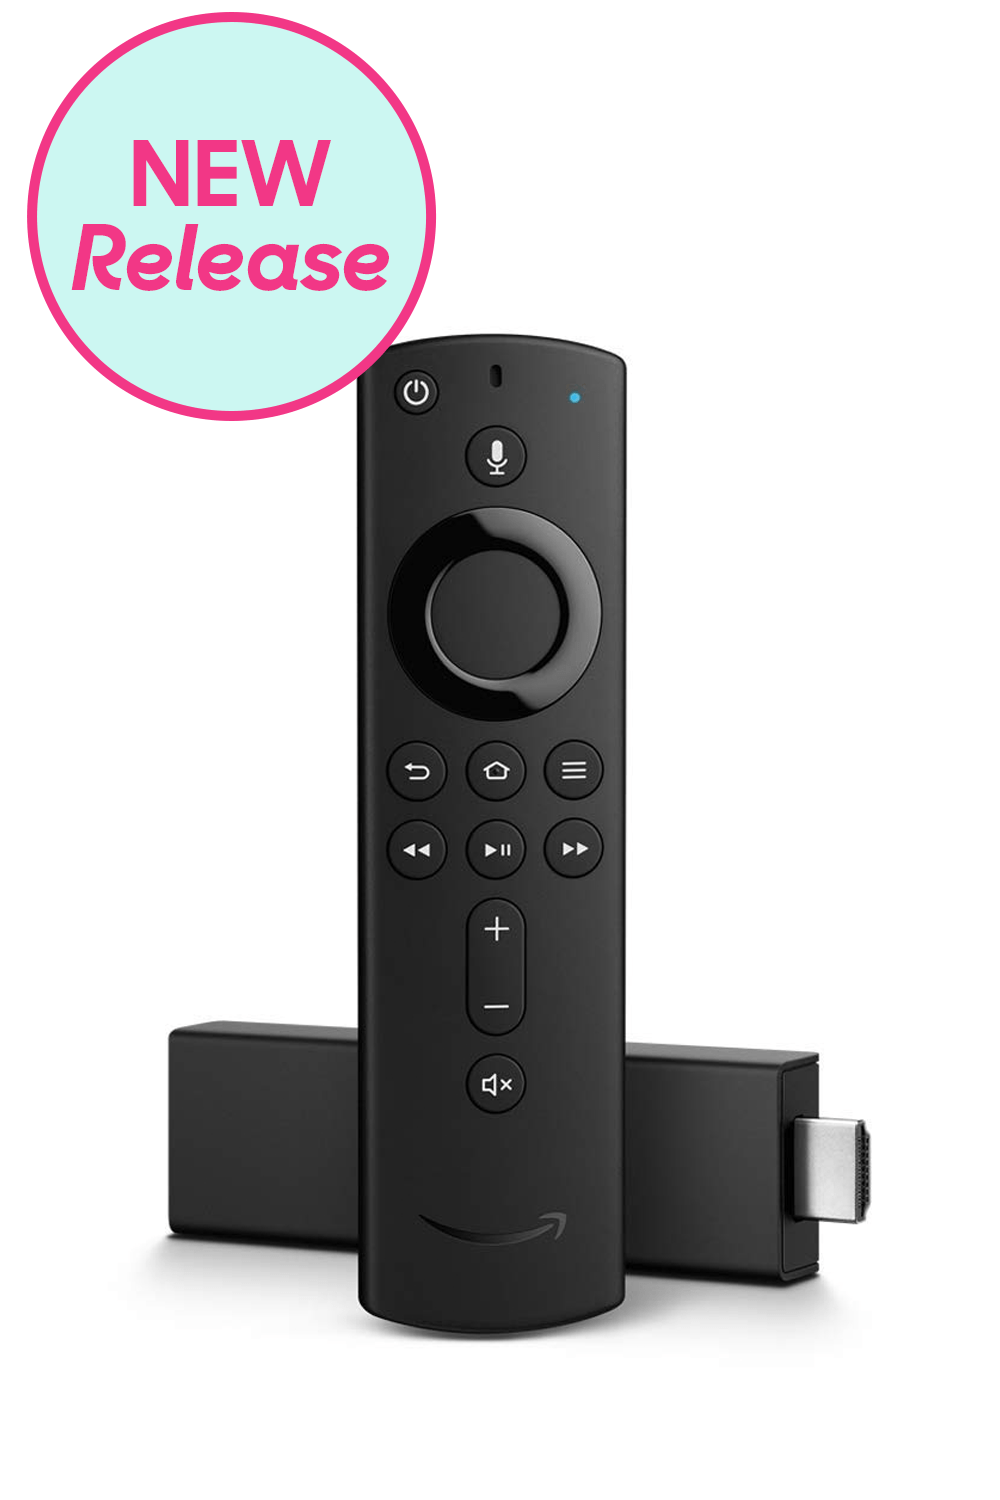 Best Gifts For New Homeowners Amazon Fire Tv Stick 4k